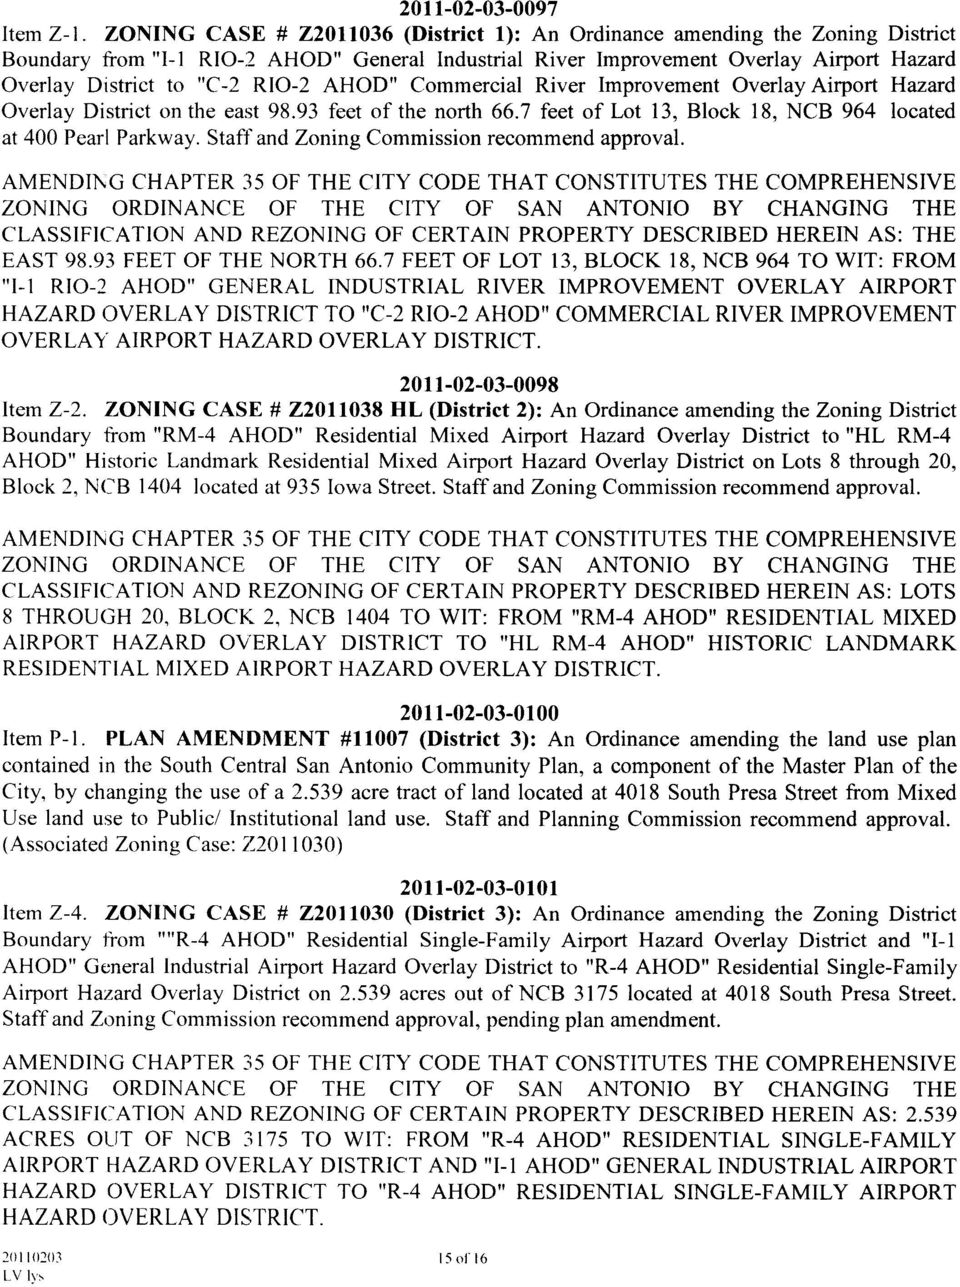 "RIO-2 AHOD"" Commercial River Improvement Overlay Airport Hazard Overlay District on the east 98.93 feet of the north 66.7 feet of Lot 13, Block 18, NCB 964 located at 400 Pearl Parkway."